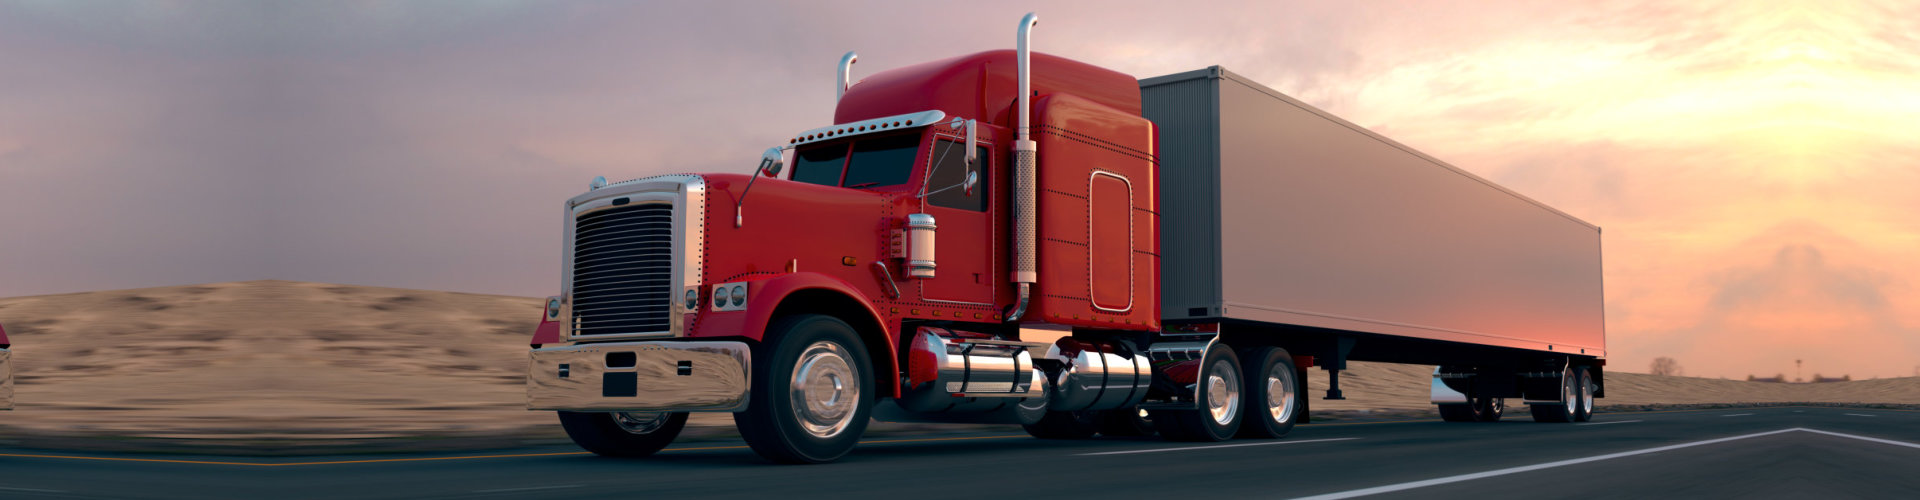 18 Wheel Truck on the road during the day. Side view. - Illustration